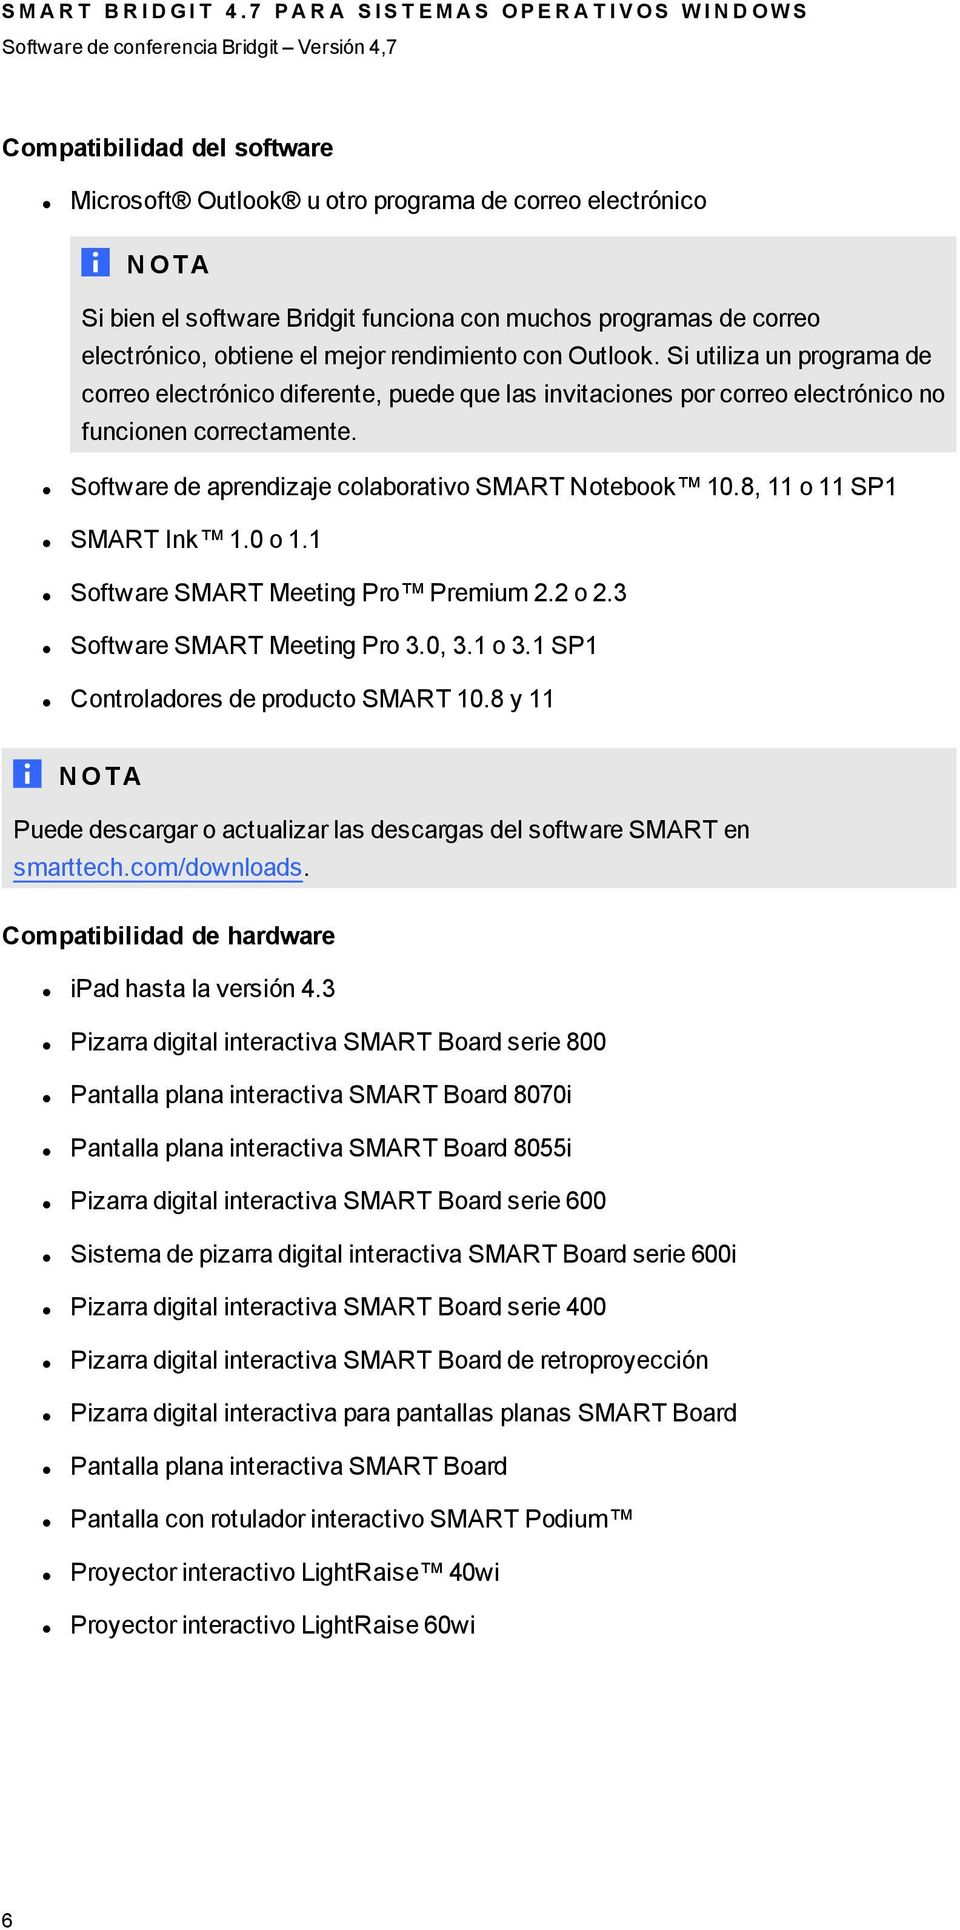 Software de aprendizaje colaborativo SMART Notebook 10.8, 11 o 11 SP1 SMART Ink 1.0 o 1.1 Software SMART Meeting Pro Premium 2.2 o 2.3 Software SMART Meeting Pro 3.0, 3.1 o 3.